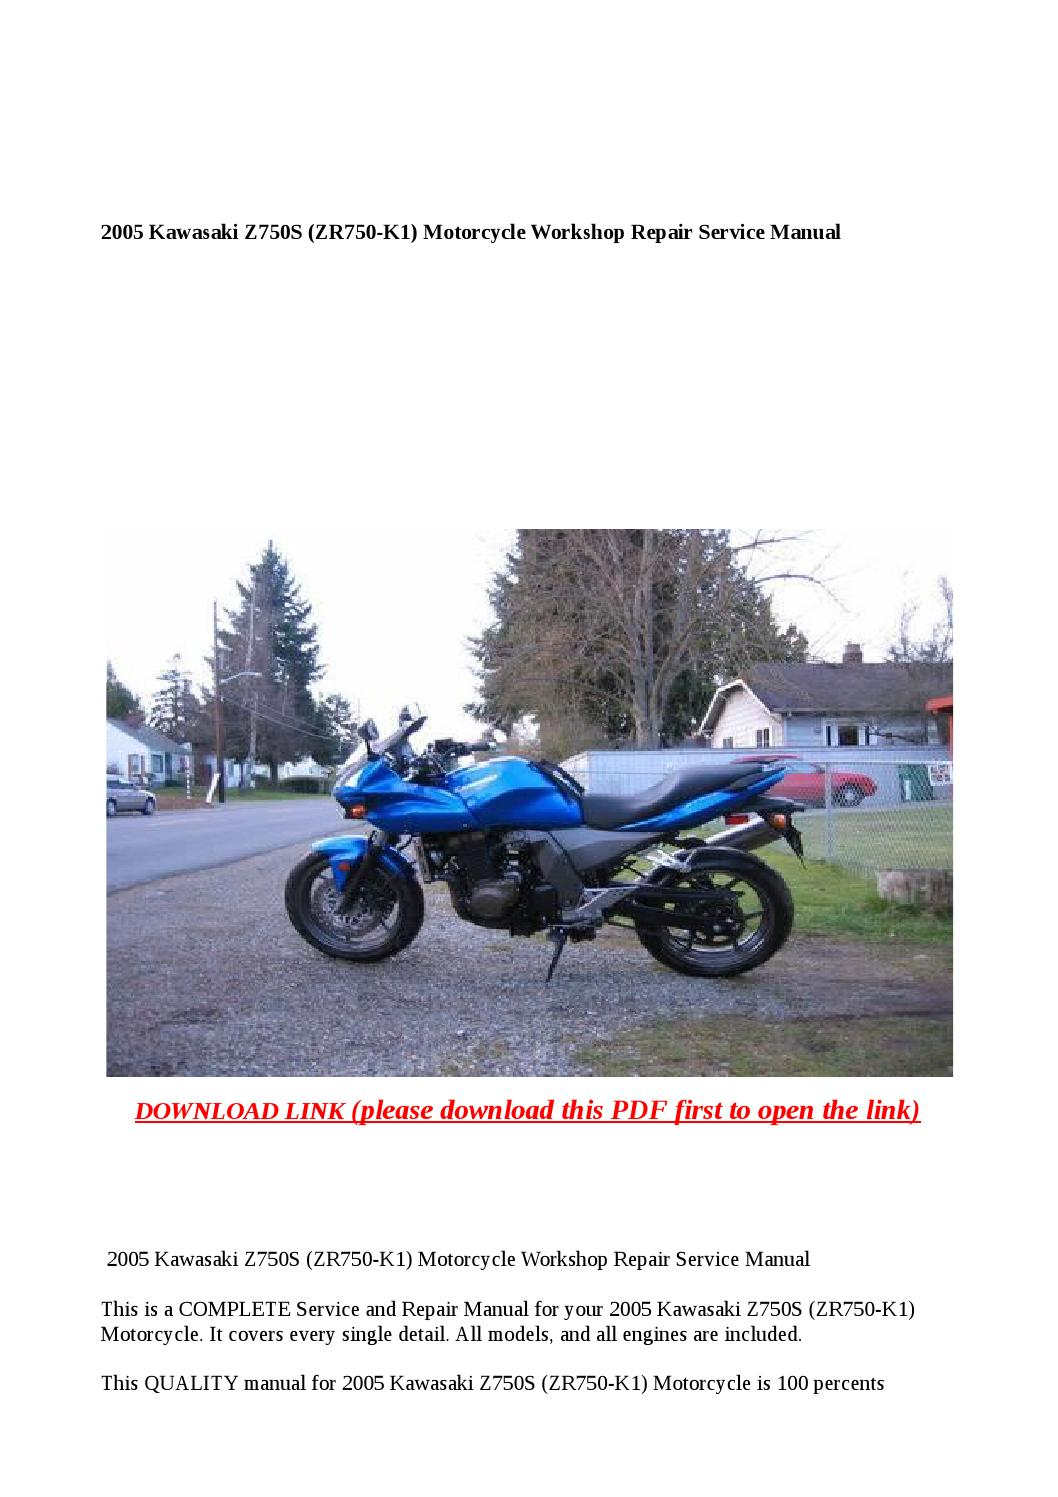 2005 kawasaki z750s  zr750 k1  motorcycle workshop repair service manual by anna tang issuu kawasaki z750s user manual 2006 kawasaki z750s owners manual